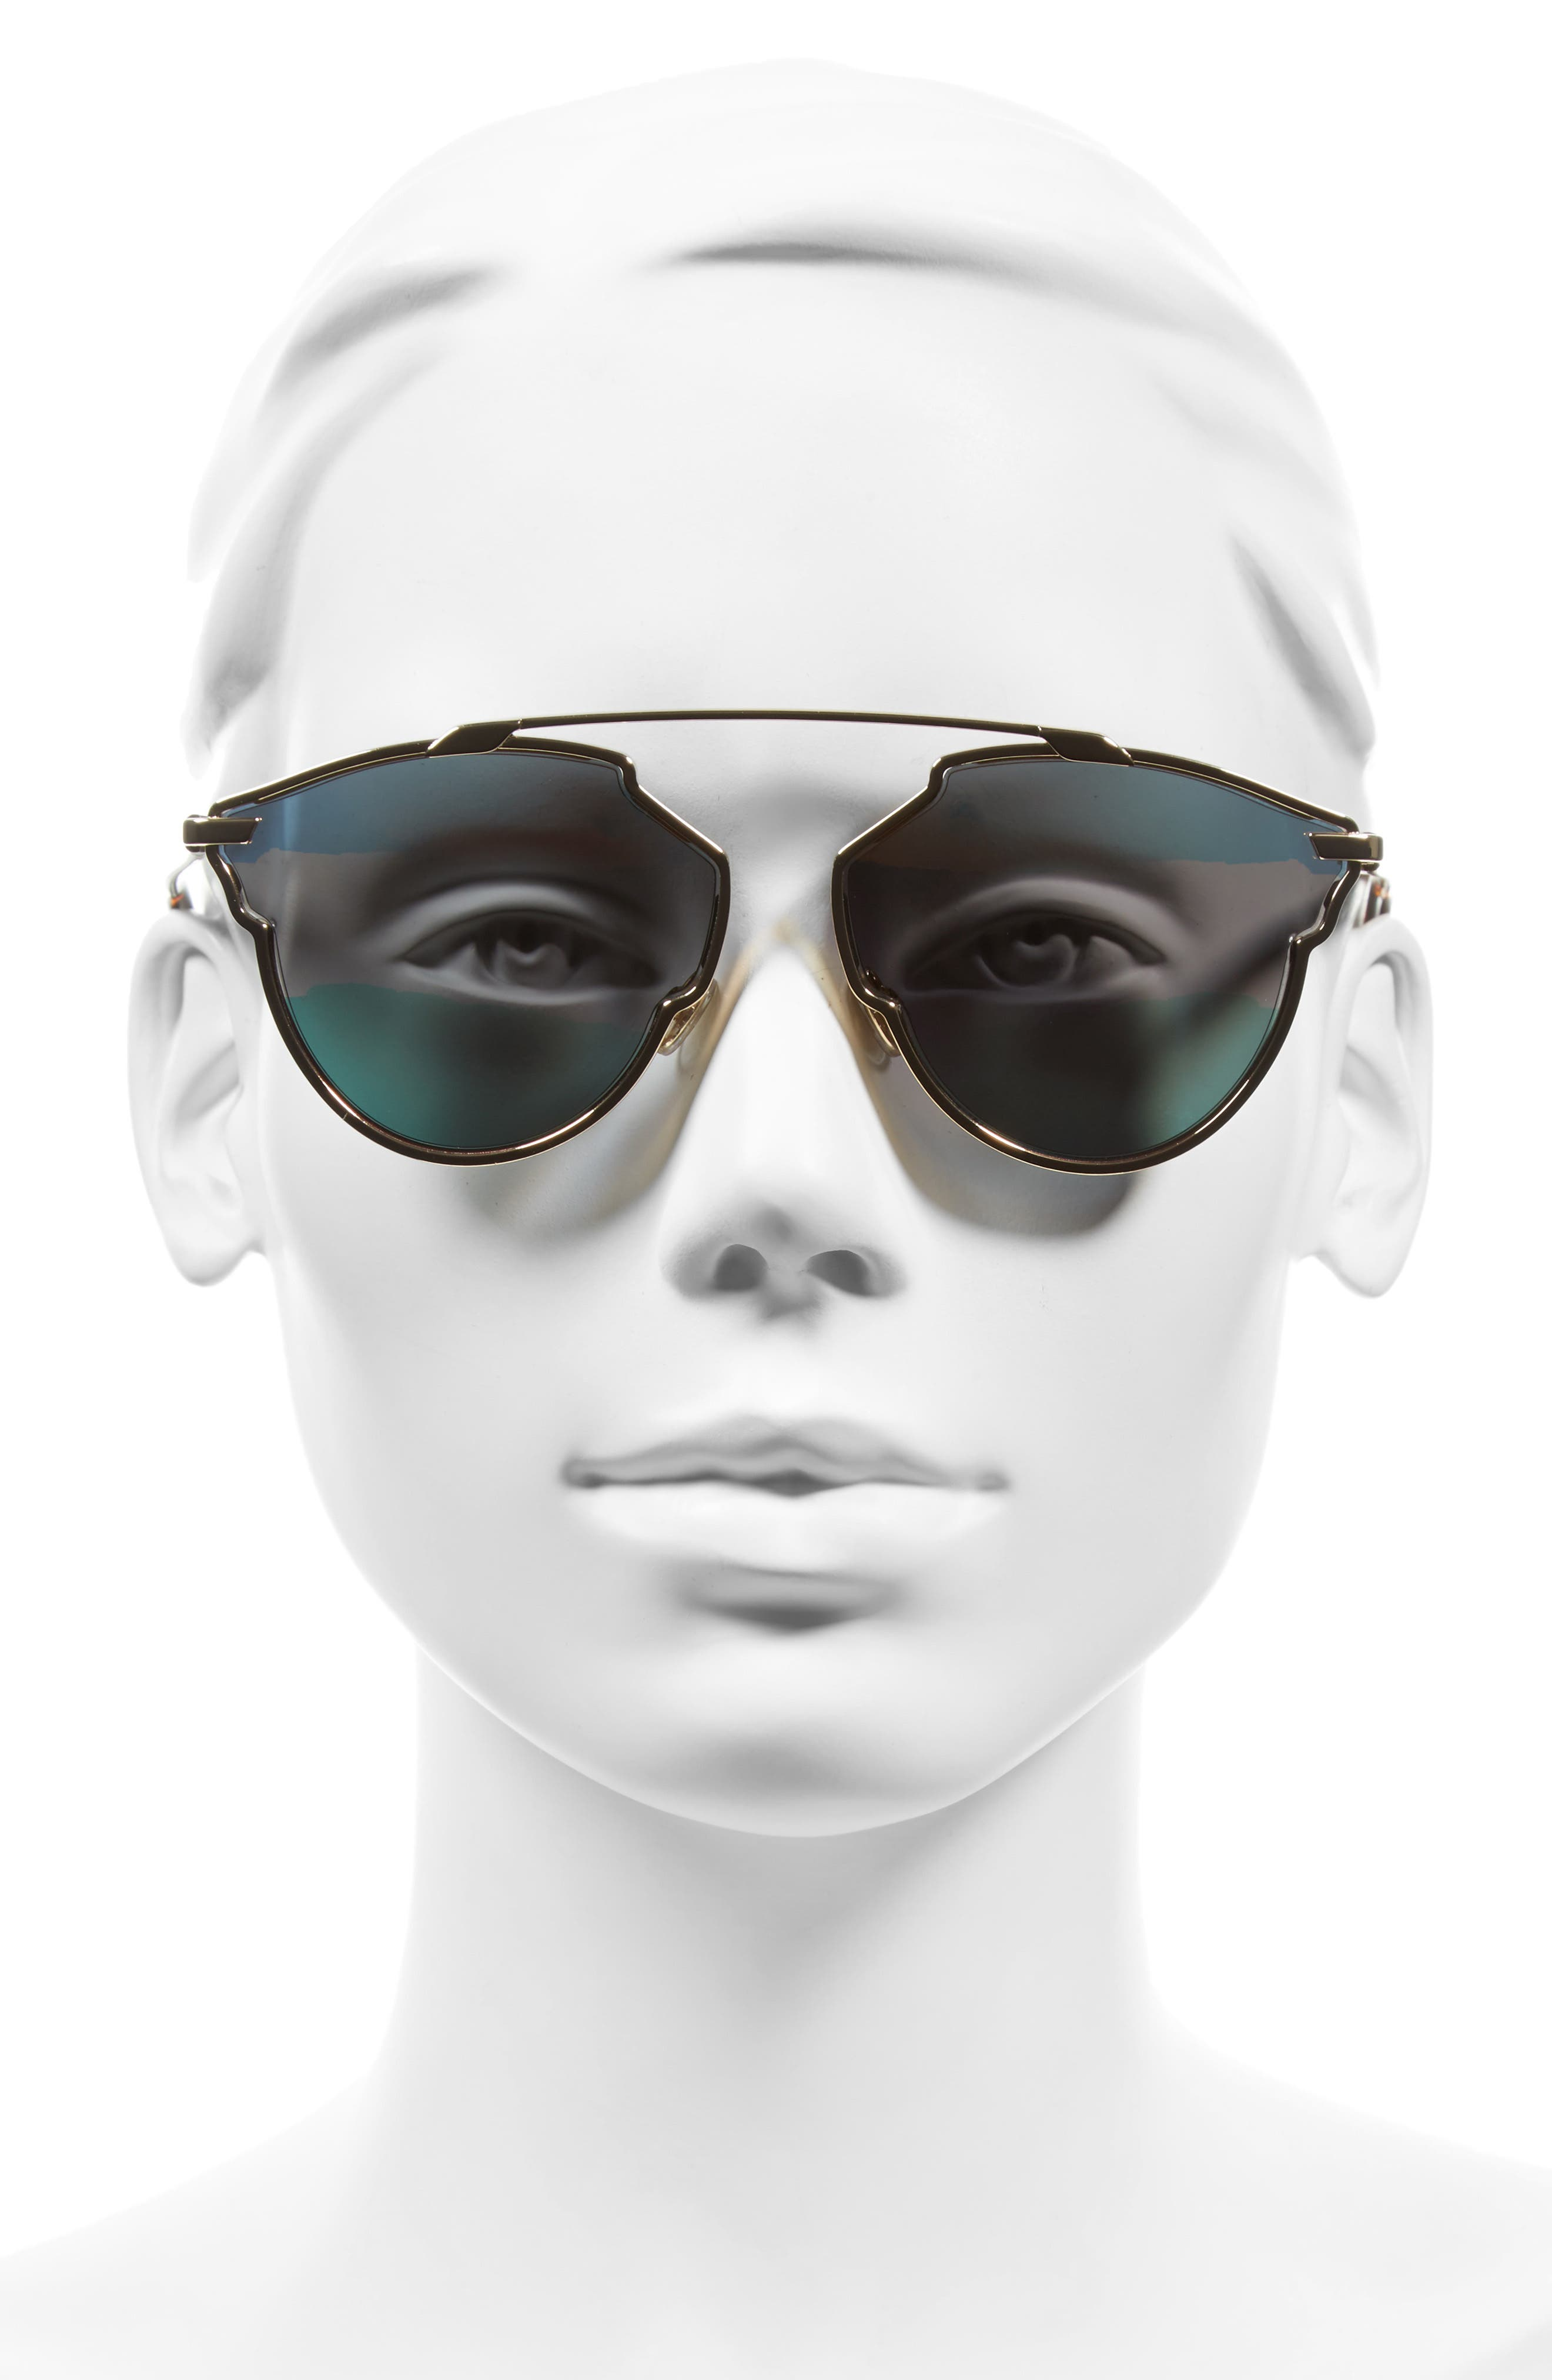 Alternate Image 2  - Dior So Real 59mm Brow Bar Sunglasses